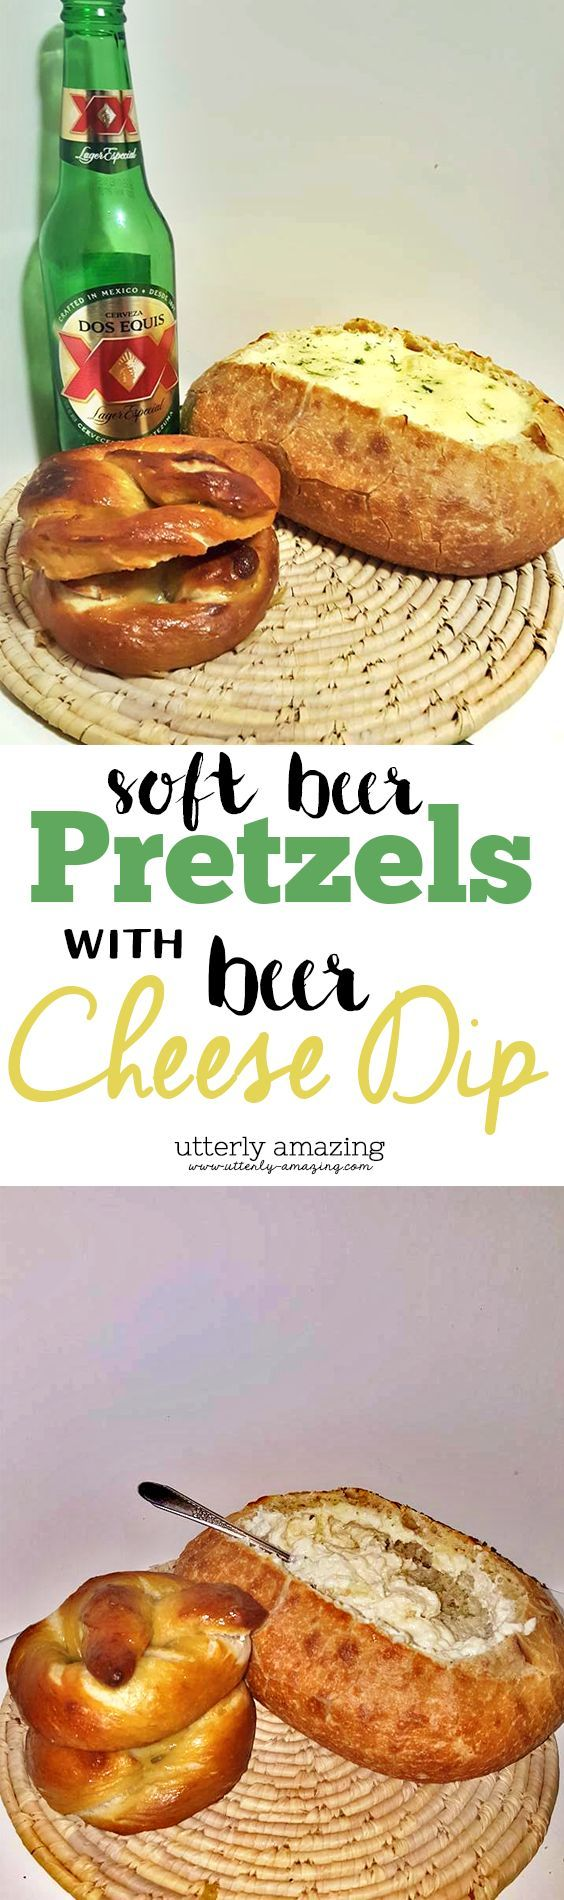 Soft Beer Pretzels And Beer Cheese Dip With Dos Equis | #WhatsYourPlay #SuperBowl |